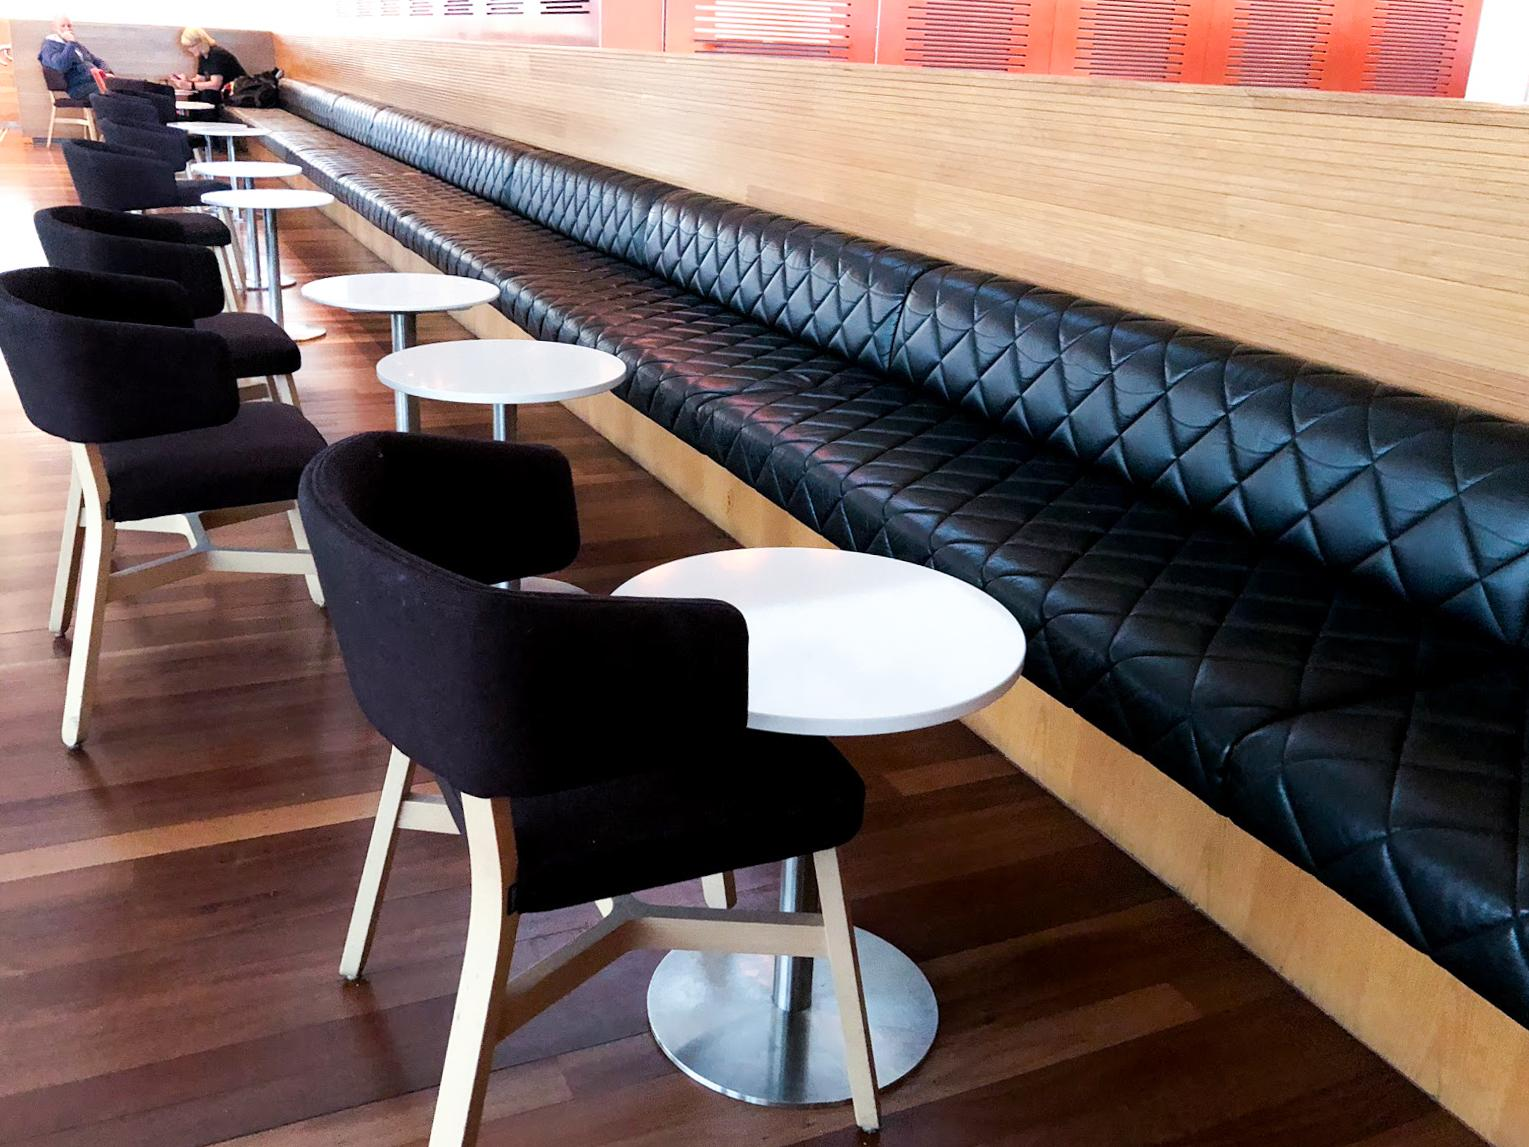 Qantas Club Sydney seating area